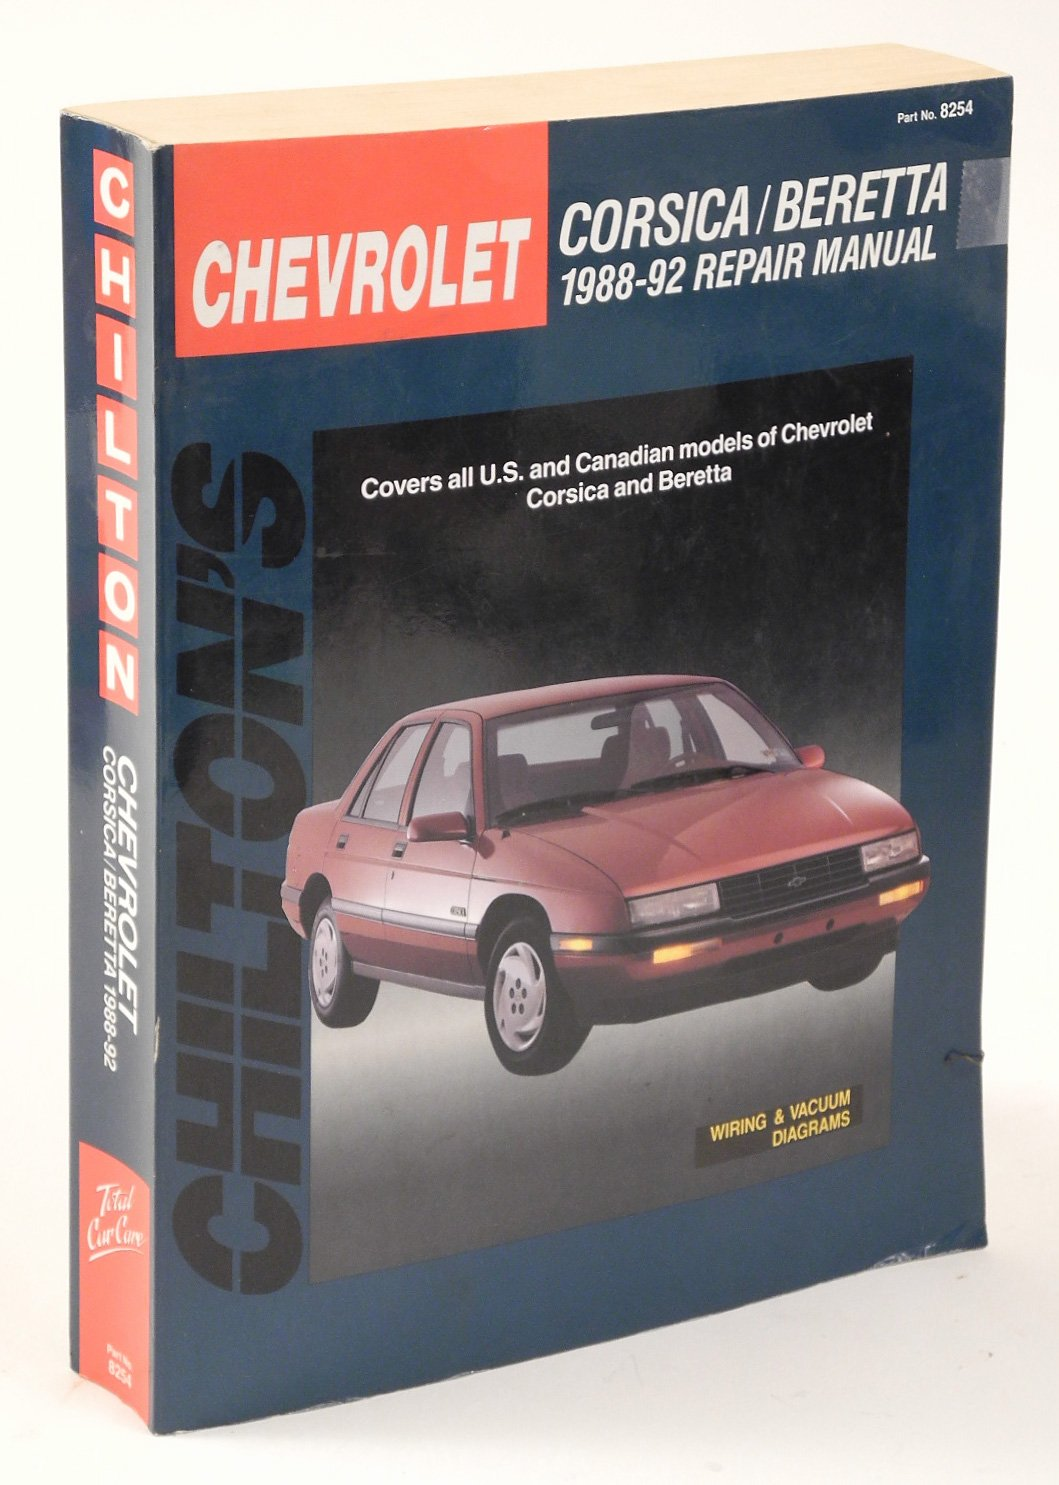 chilton's chevrolet: corsica/beretta : 1988-92 repair manual/covers all  u s  and canadian models of chevrolet corsica and beretta paperback – june,  1992